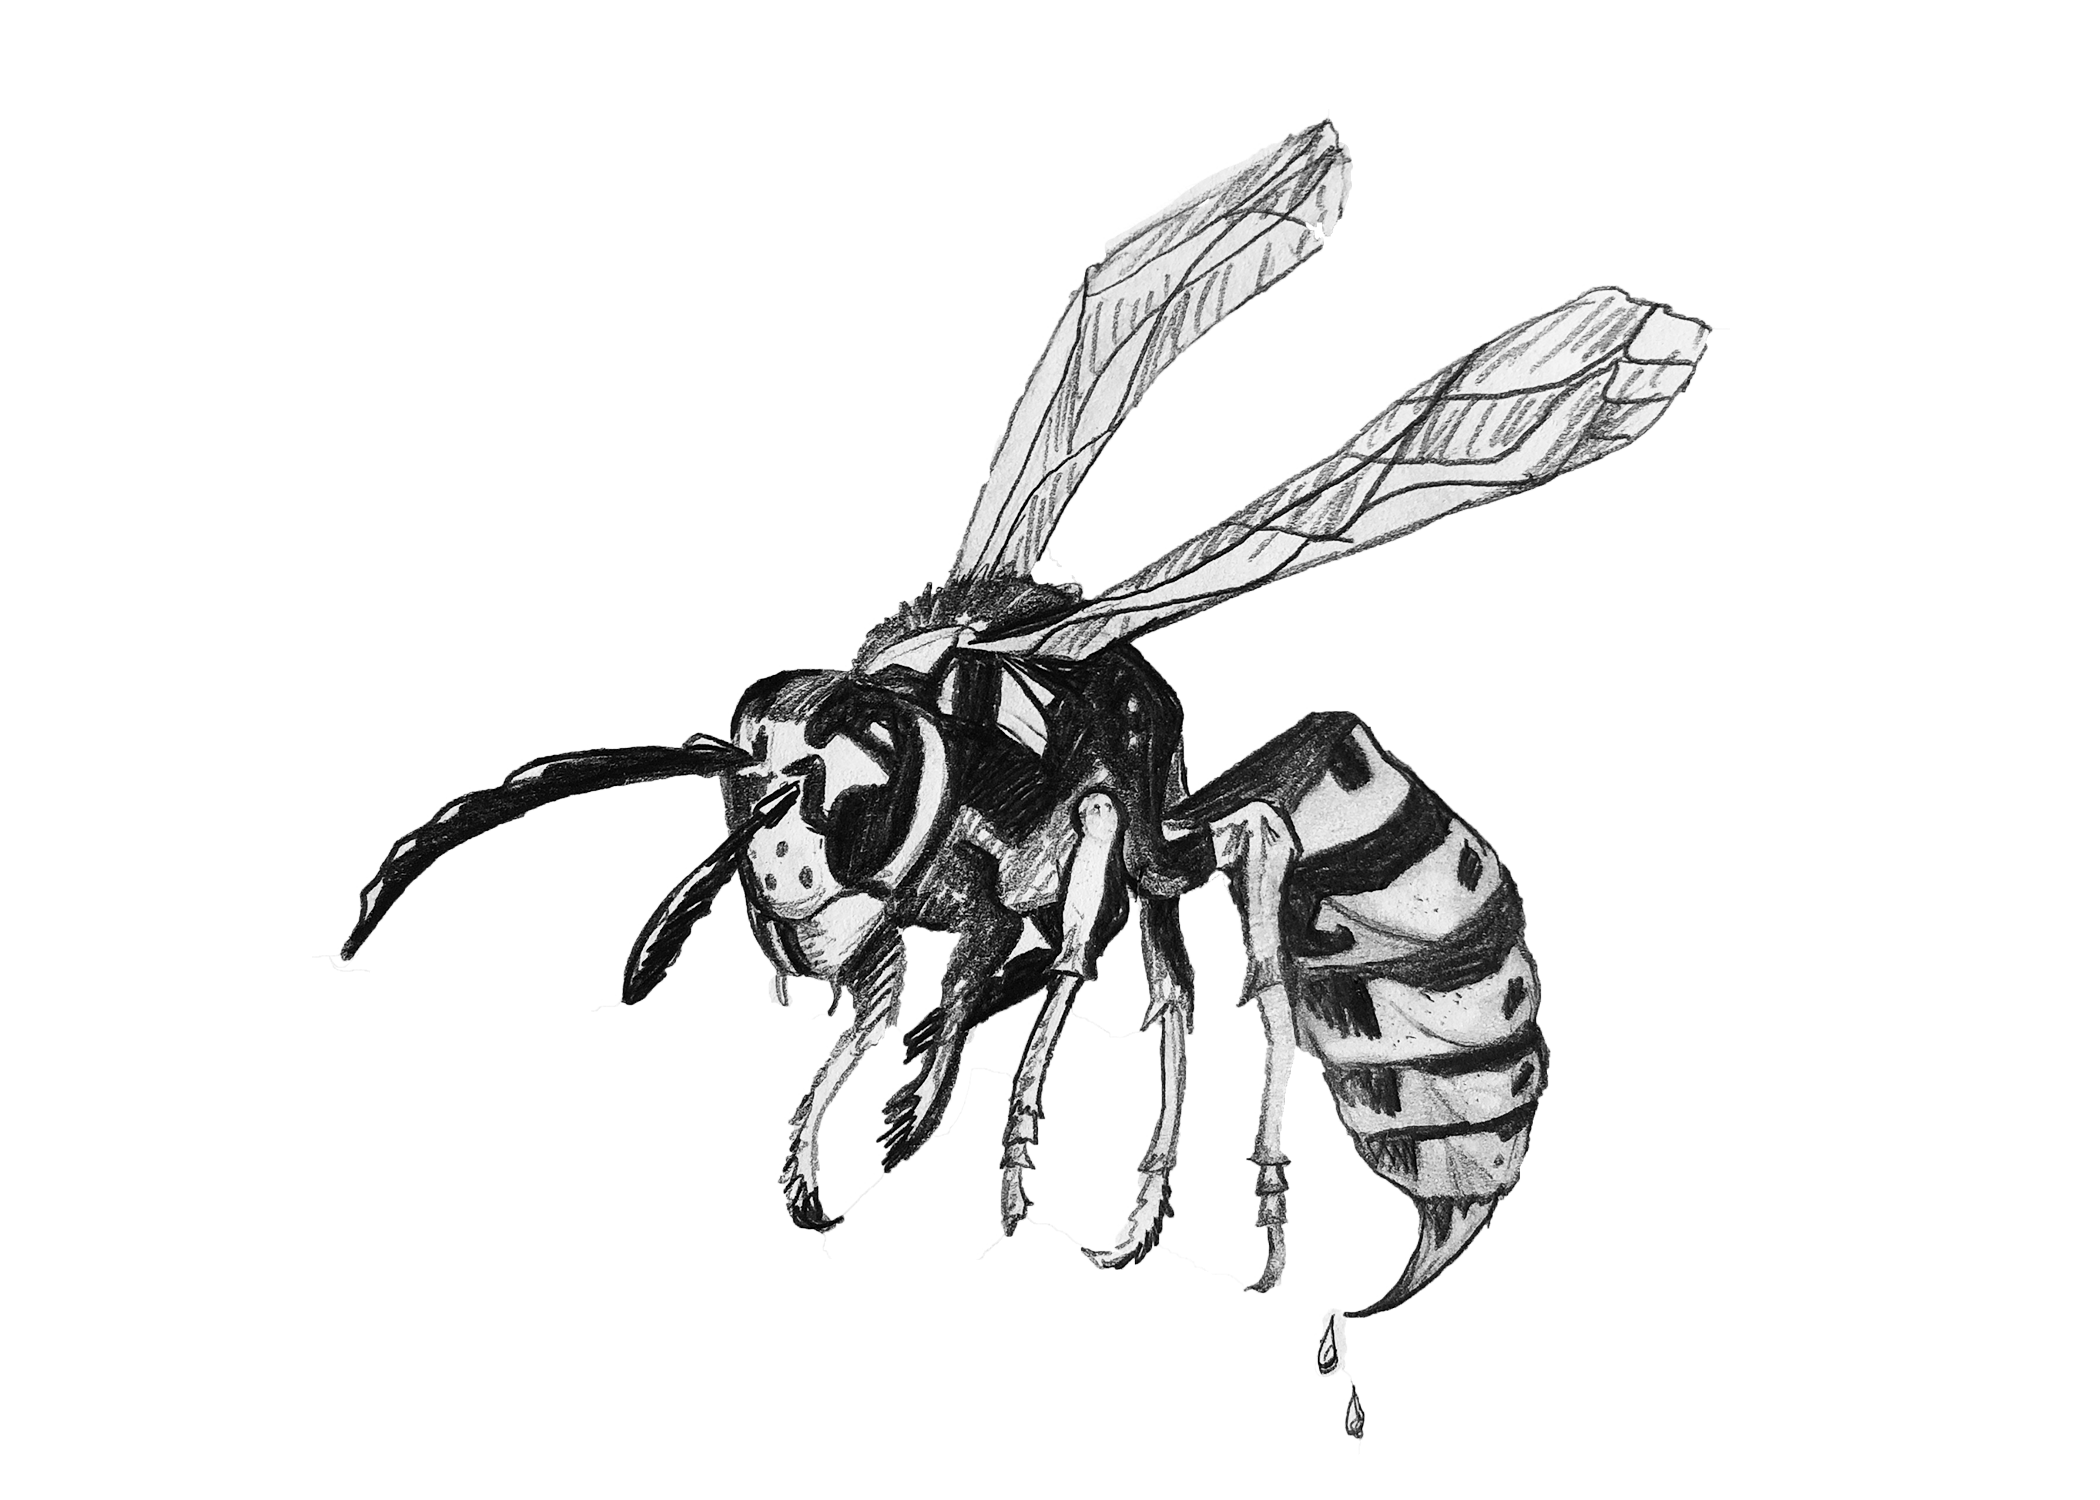 Meet Waspy - Waspy is our NEW Mascot & the feature of our NEW logo. You can spot him on our newly painted Truck and all over our NEW website. Waspy was hand drawn by our friend and local artist Caitlin Daly. She also designed the nest, wasp, house, and various other graphite vectors featured on our homepage. Click Here to Read More about Caitlin, Waspy, and our New brand.